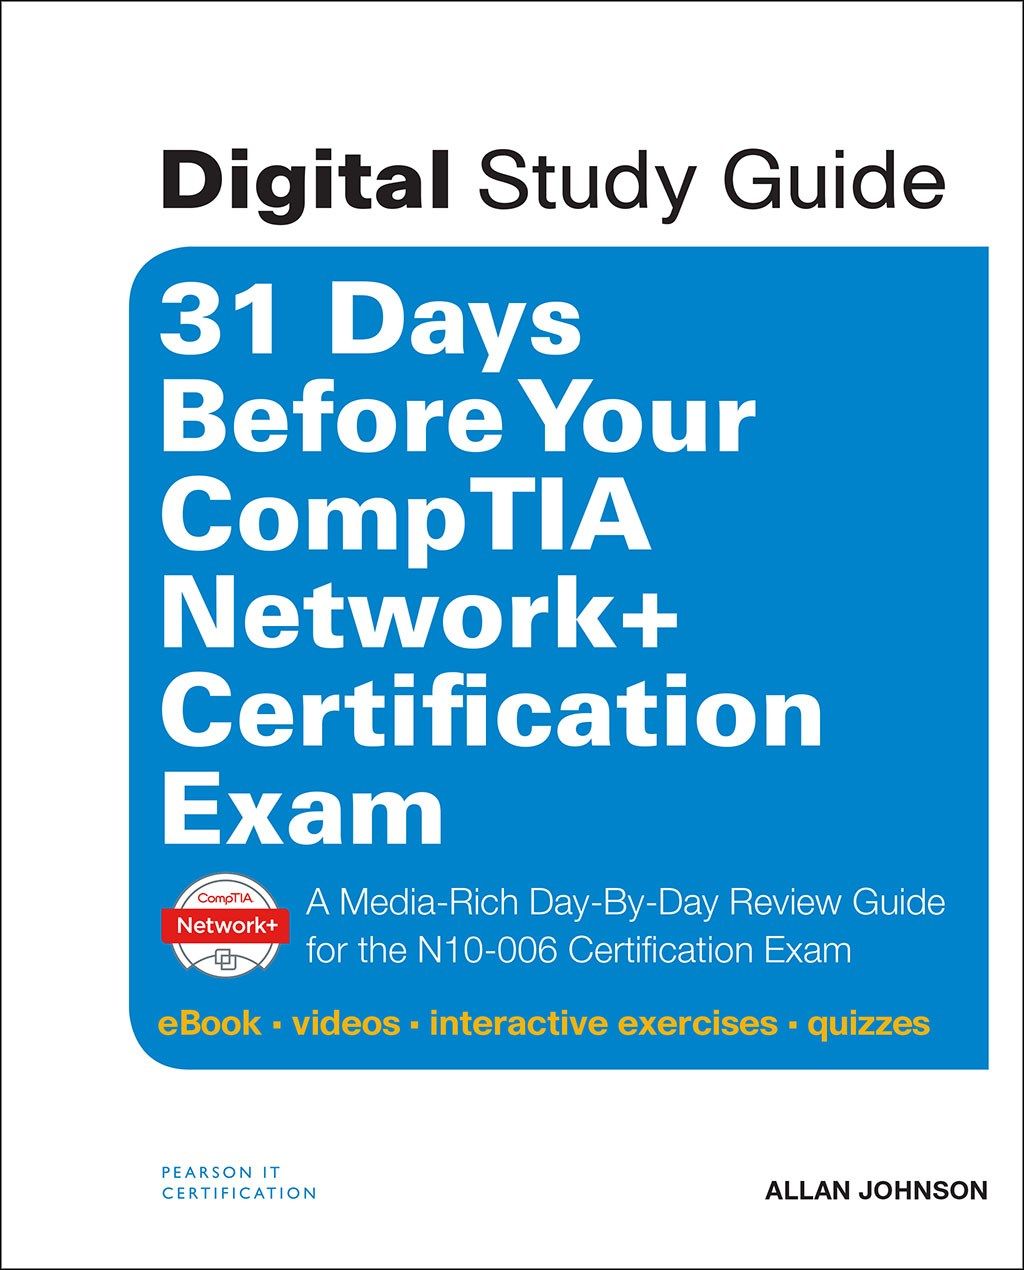 31 Days Before Your CompTIA Network+ Certification Exam (Digital Study Guide): A Day-By-Day Review Guide for the N10-006 Certification Exam (eBook, videos, interactive exercises, quizzes)